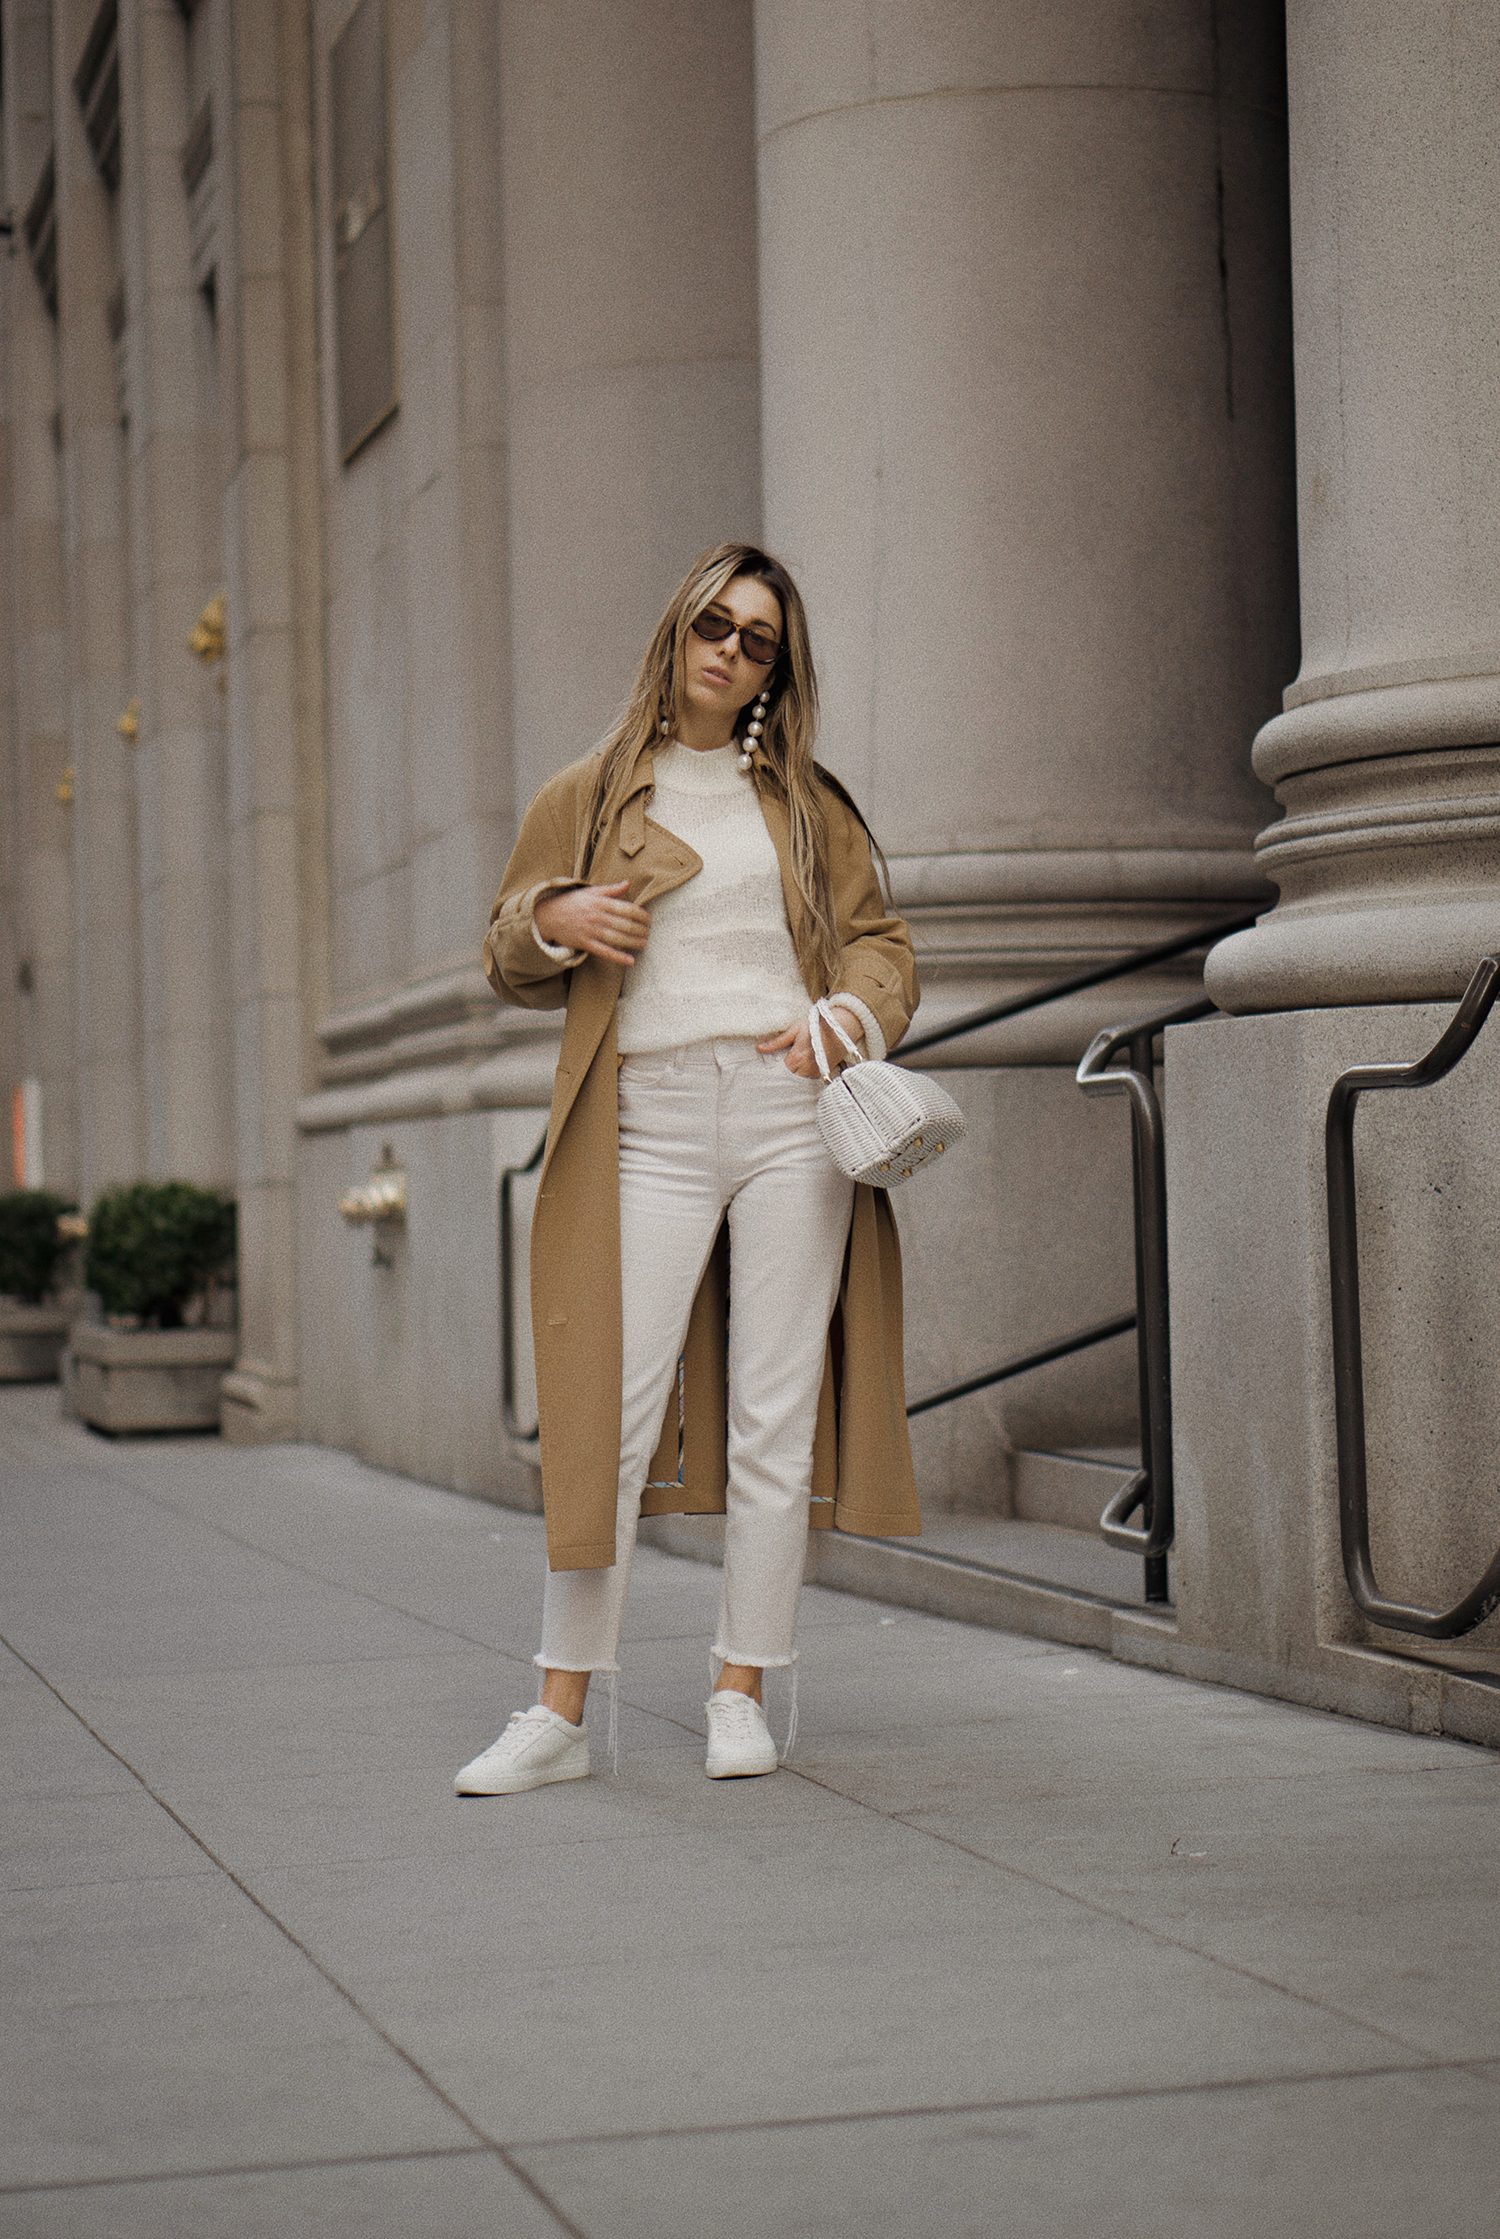 paulsmith_trenchcoat_vinceshoes_wicker_bag_white_outfit_freepeople_lenajuice_thewhiteocean_06